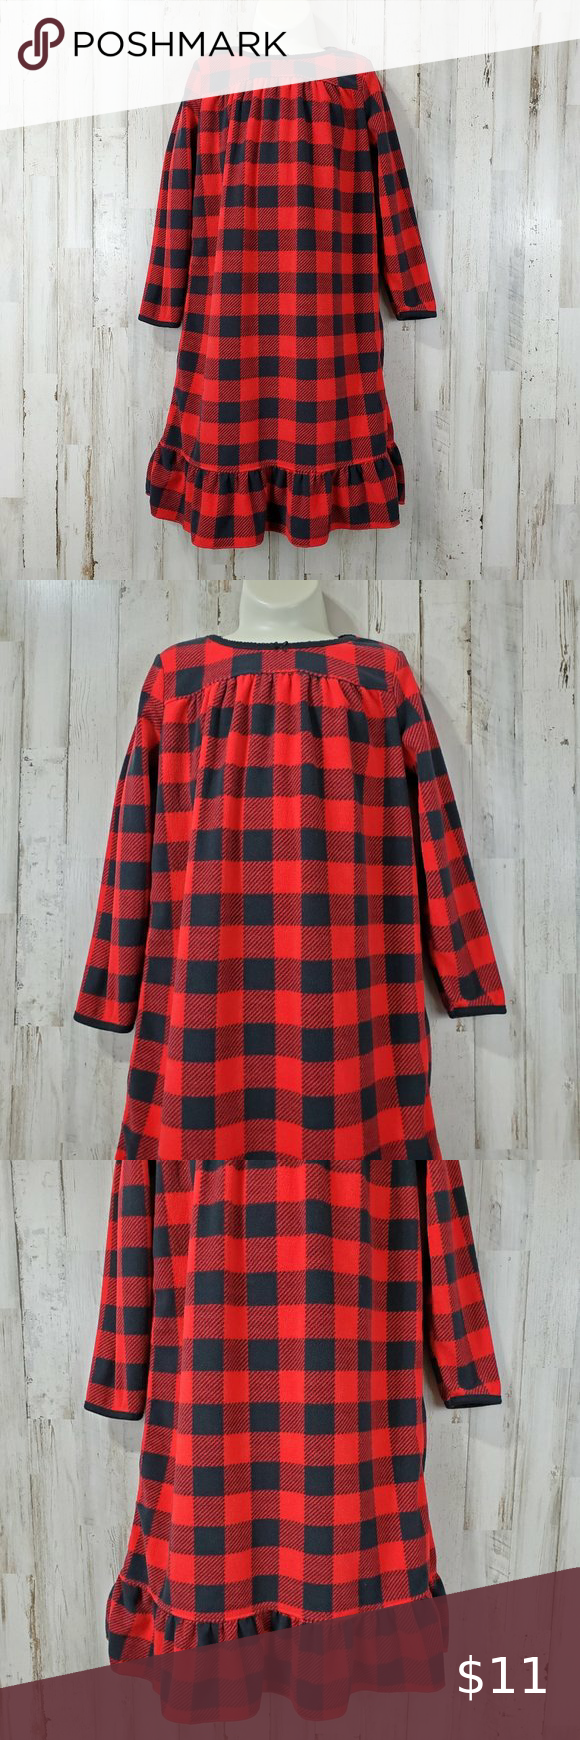 Carter's Girls Nightgown 45 Red Black Plaid in 2020